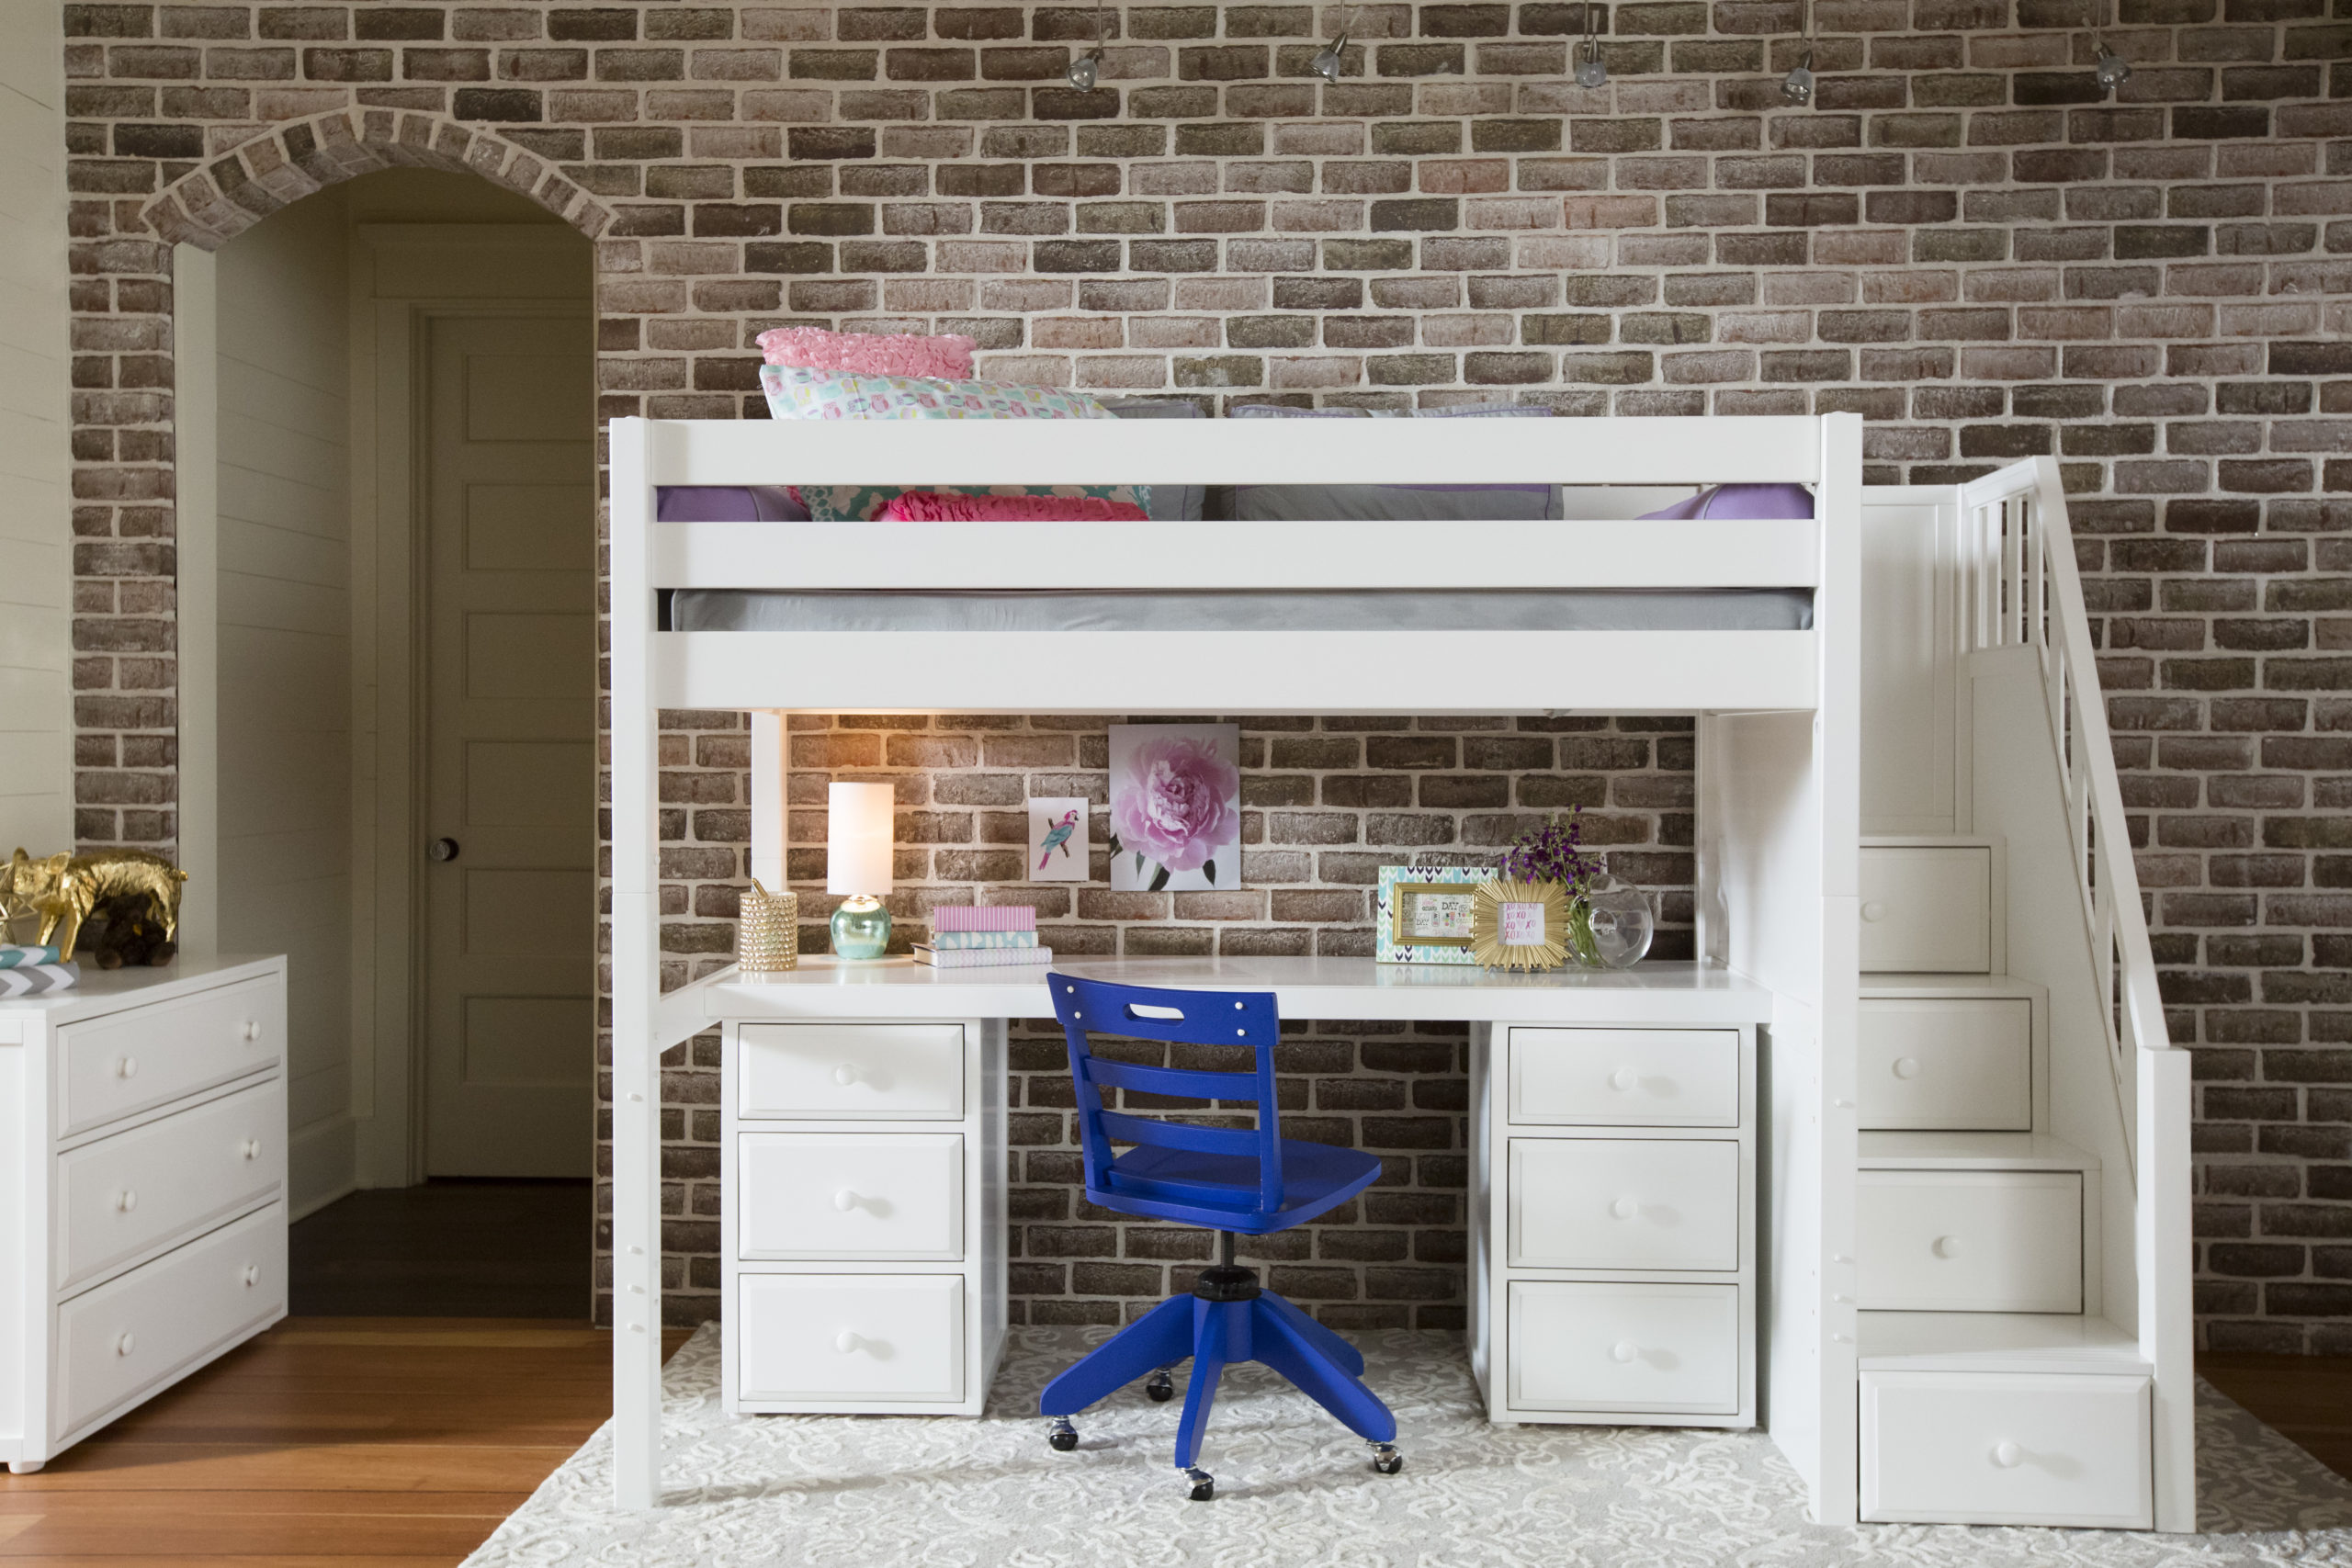 Maxtrix Twin High Loft Bed With Stairs Desk And Dressers White Natural And Chestnut Kids Furniture In Los Angeles